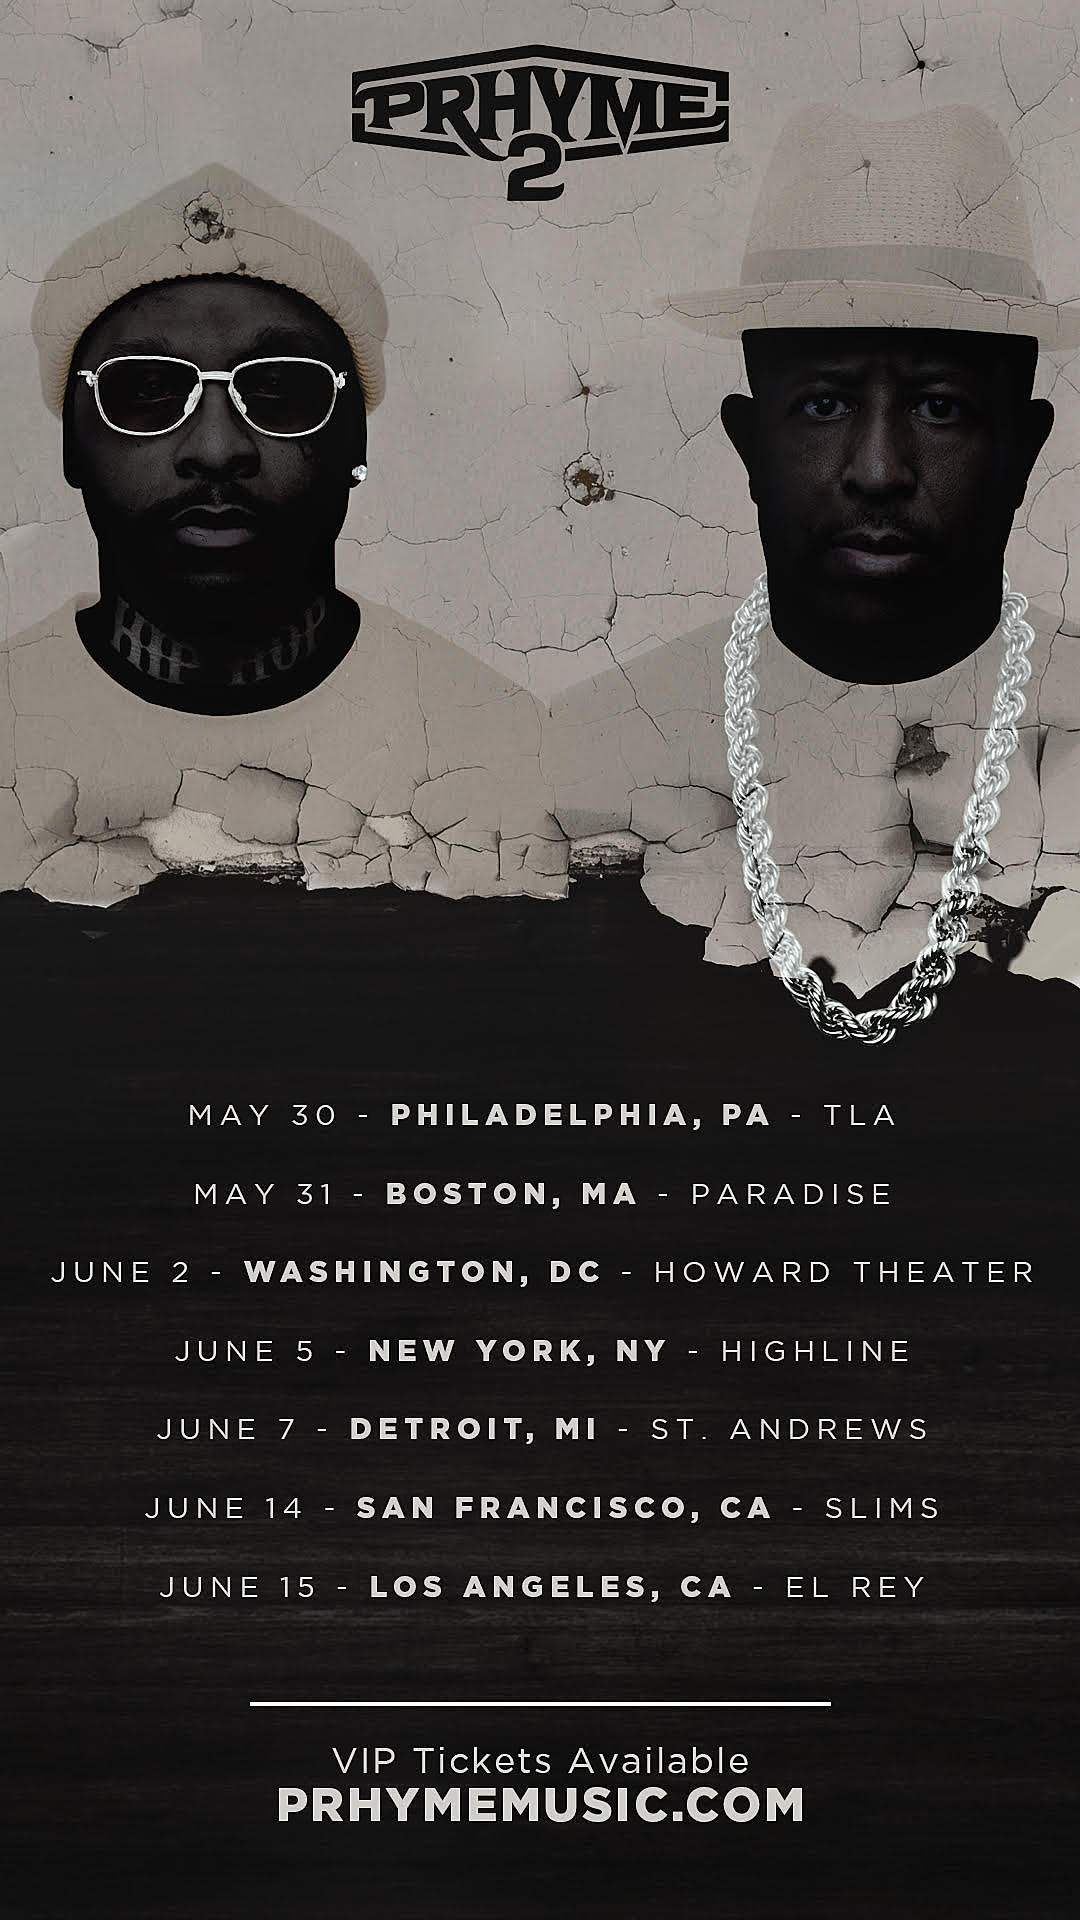 Royce 59 And Dj Premier Unveil Dates For Prhyme 2 Tour Xxl